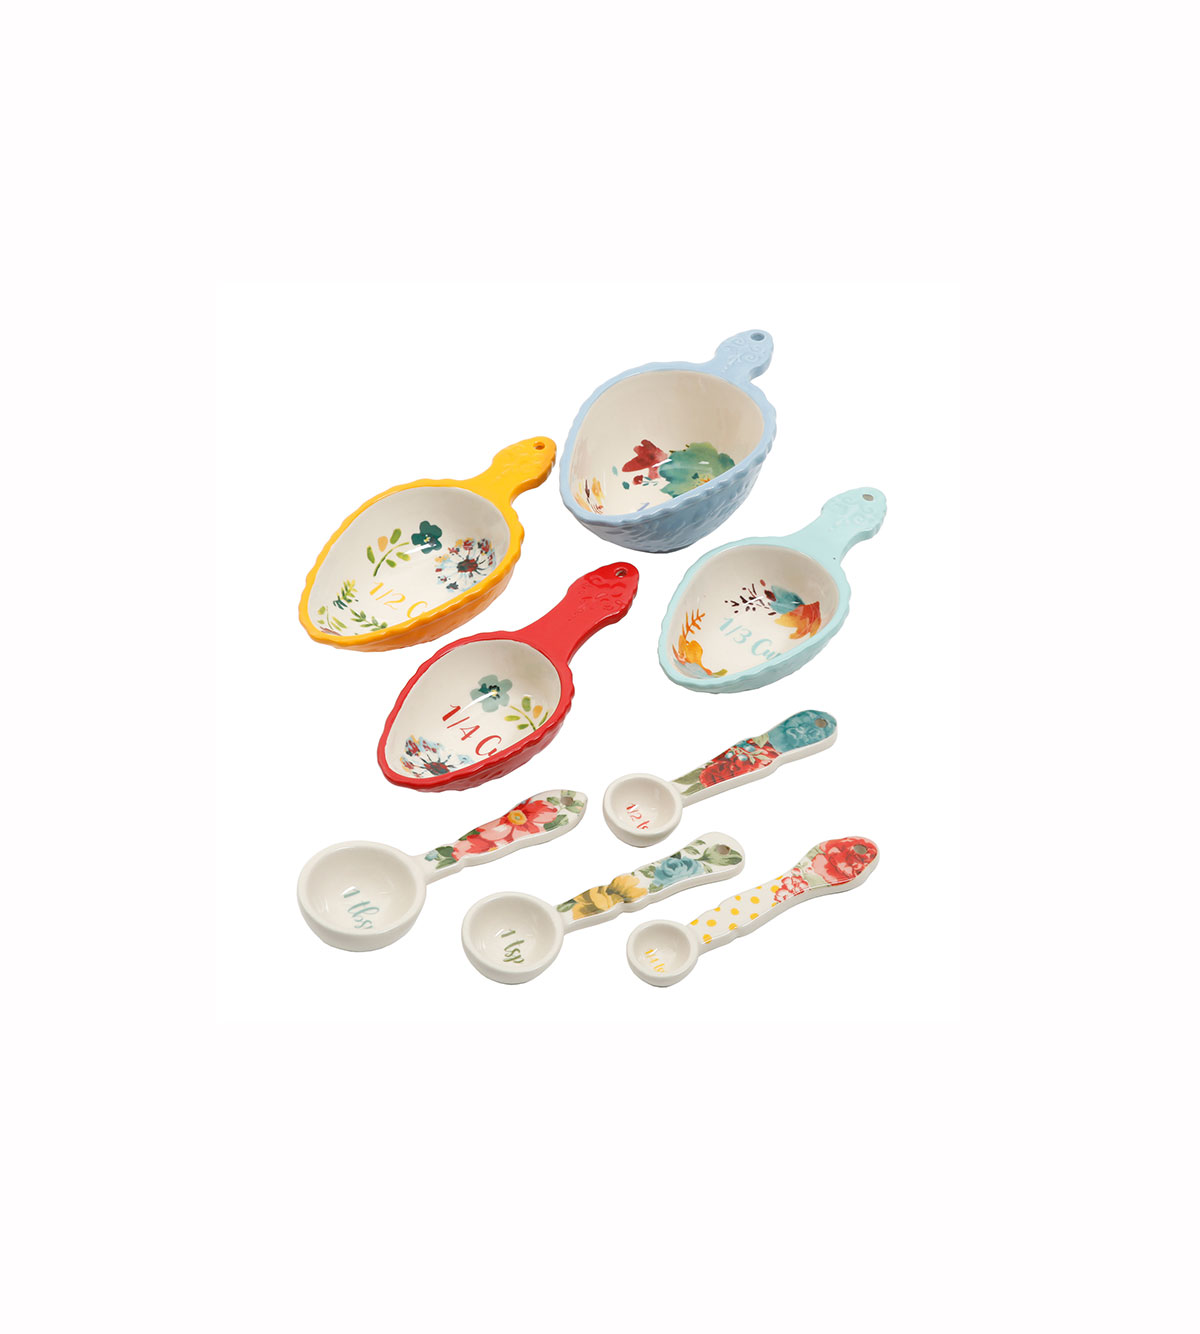 Measuring Spoon and Scoop Set